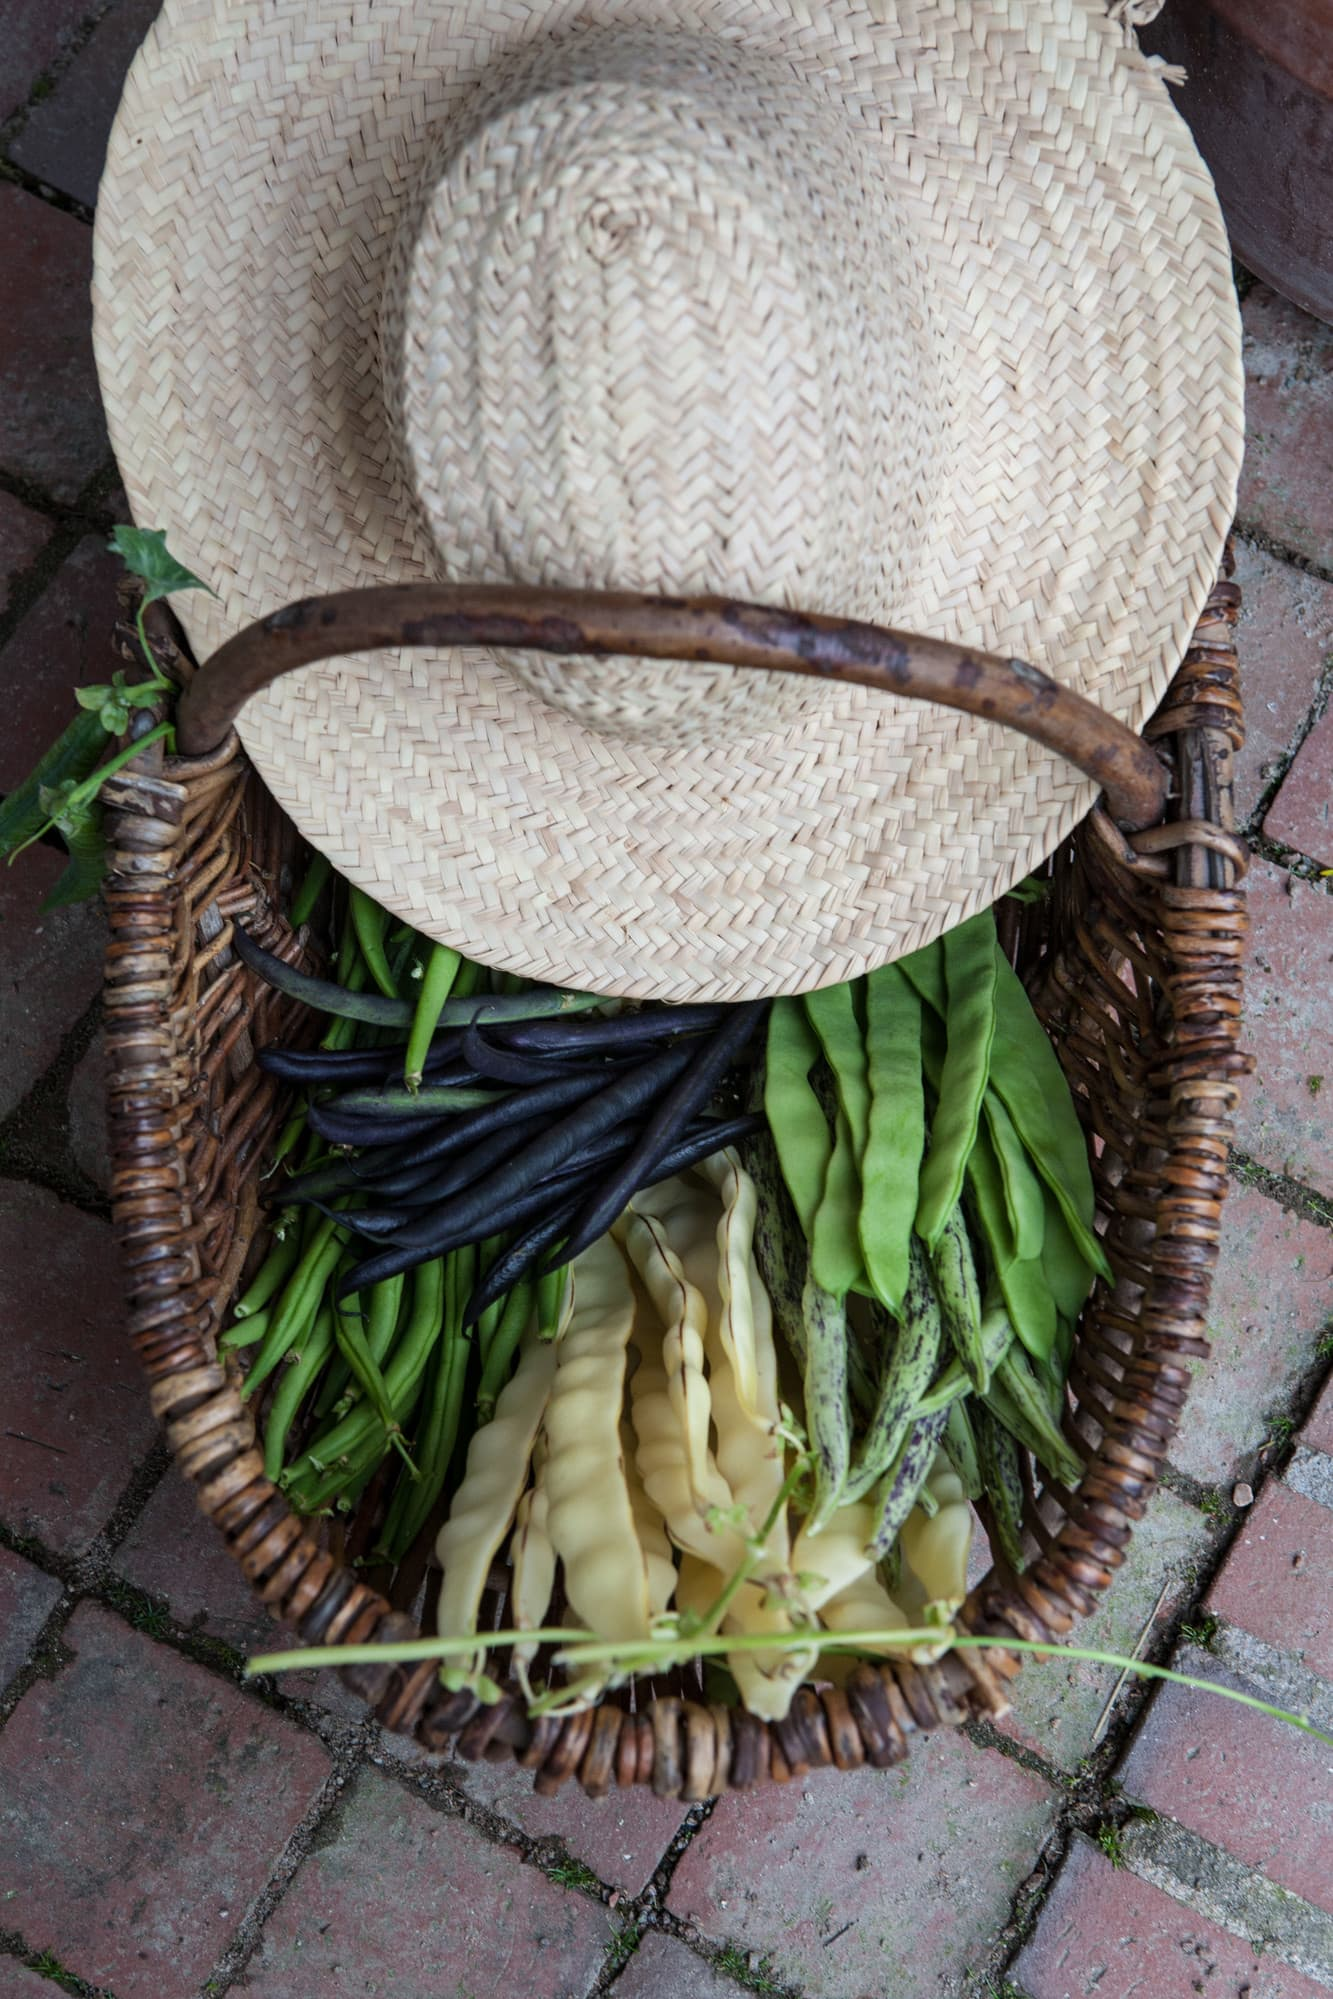 Freshly harvested wax beans, as well as purple, green and snap beans.The bright one in the foreground is called Golden gate.